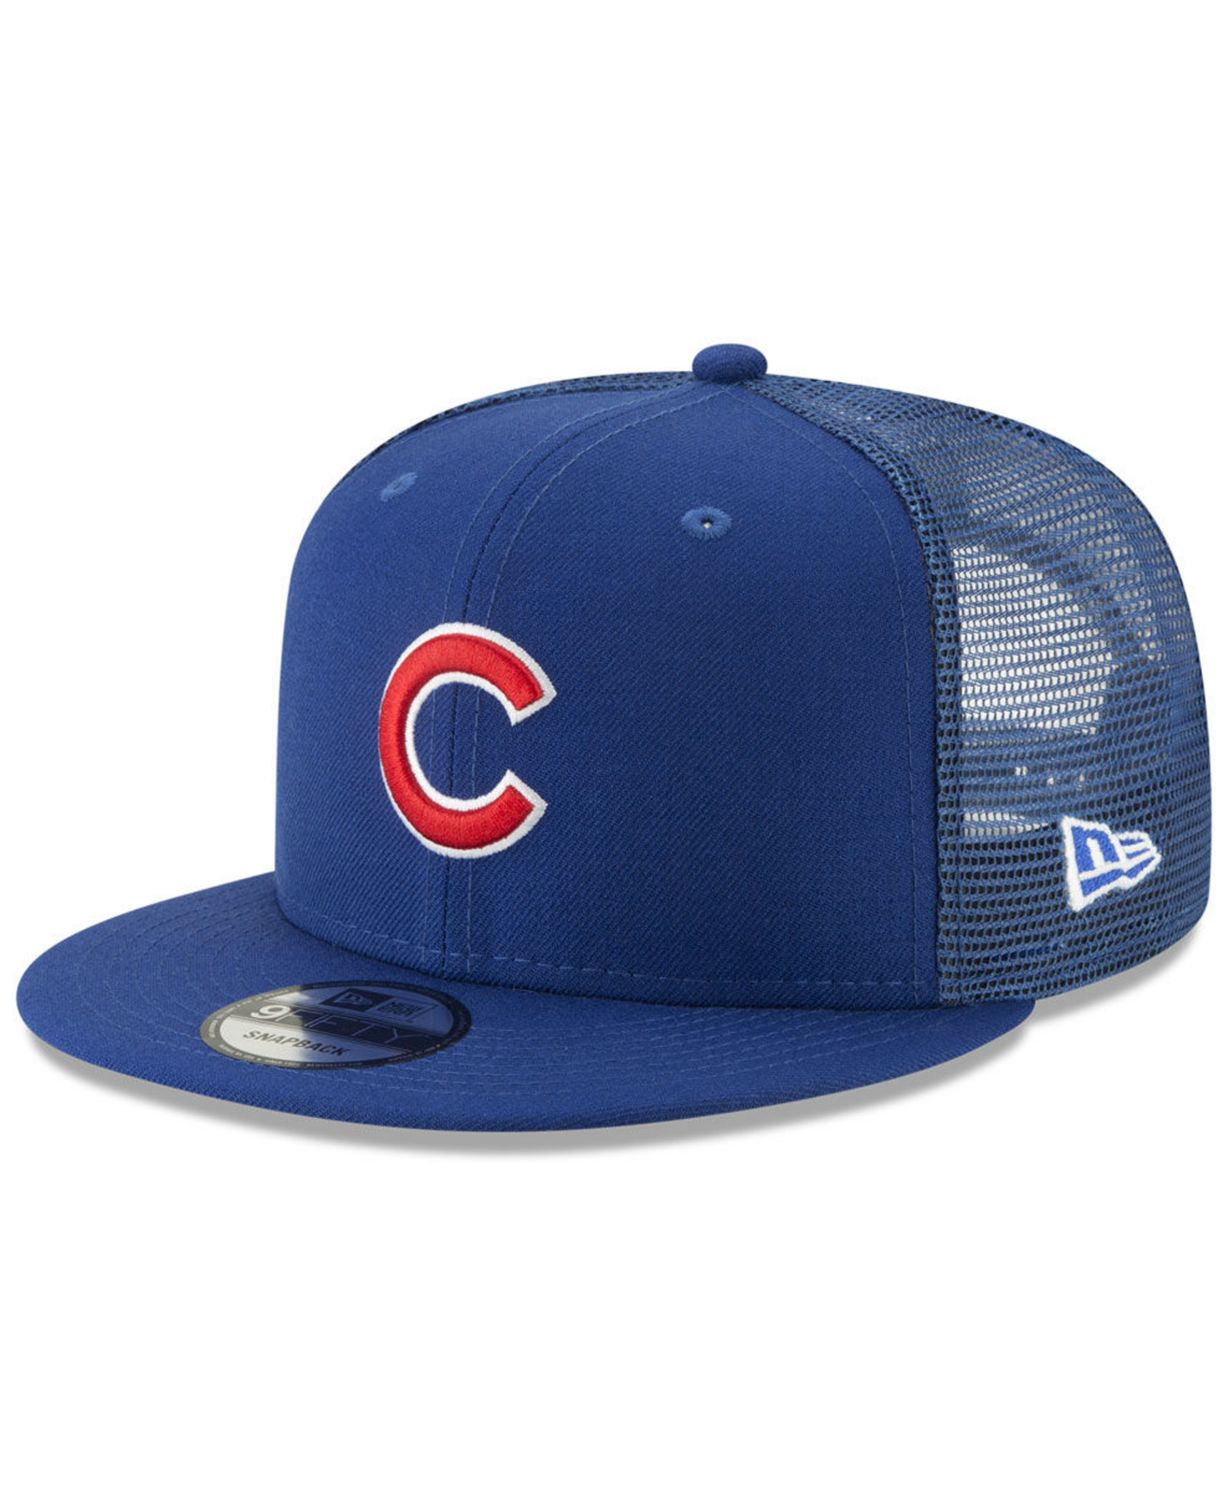 New Era Chicago Cubs All Day Mesh Back 9FIFTY Cap & Reviews - Sports Fan Shop By Lids - Men - Macy's